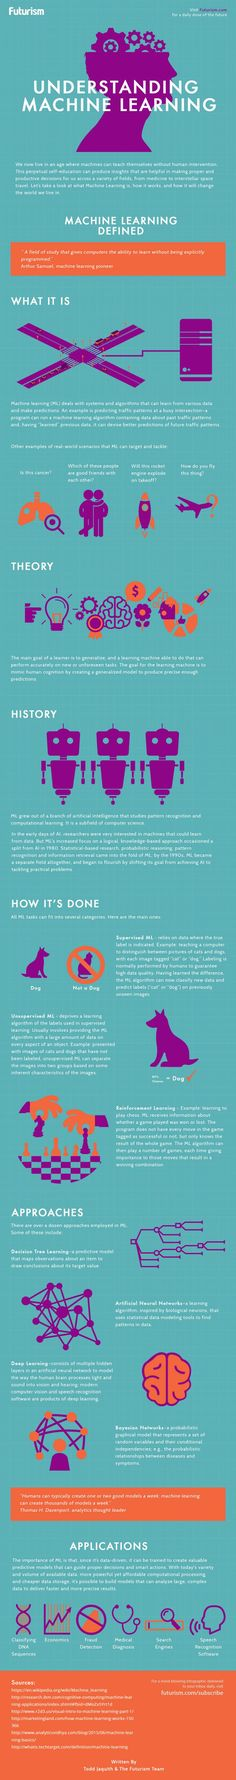 Understanding Machine Learning Infographic - http://elearninginfographics.com/understanding-machine-learning-infographic/